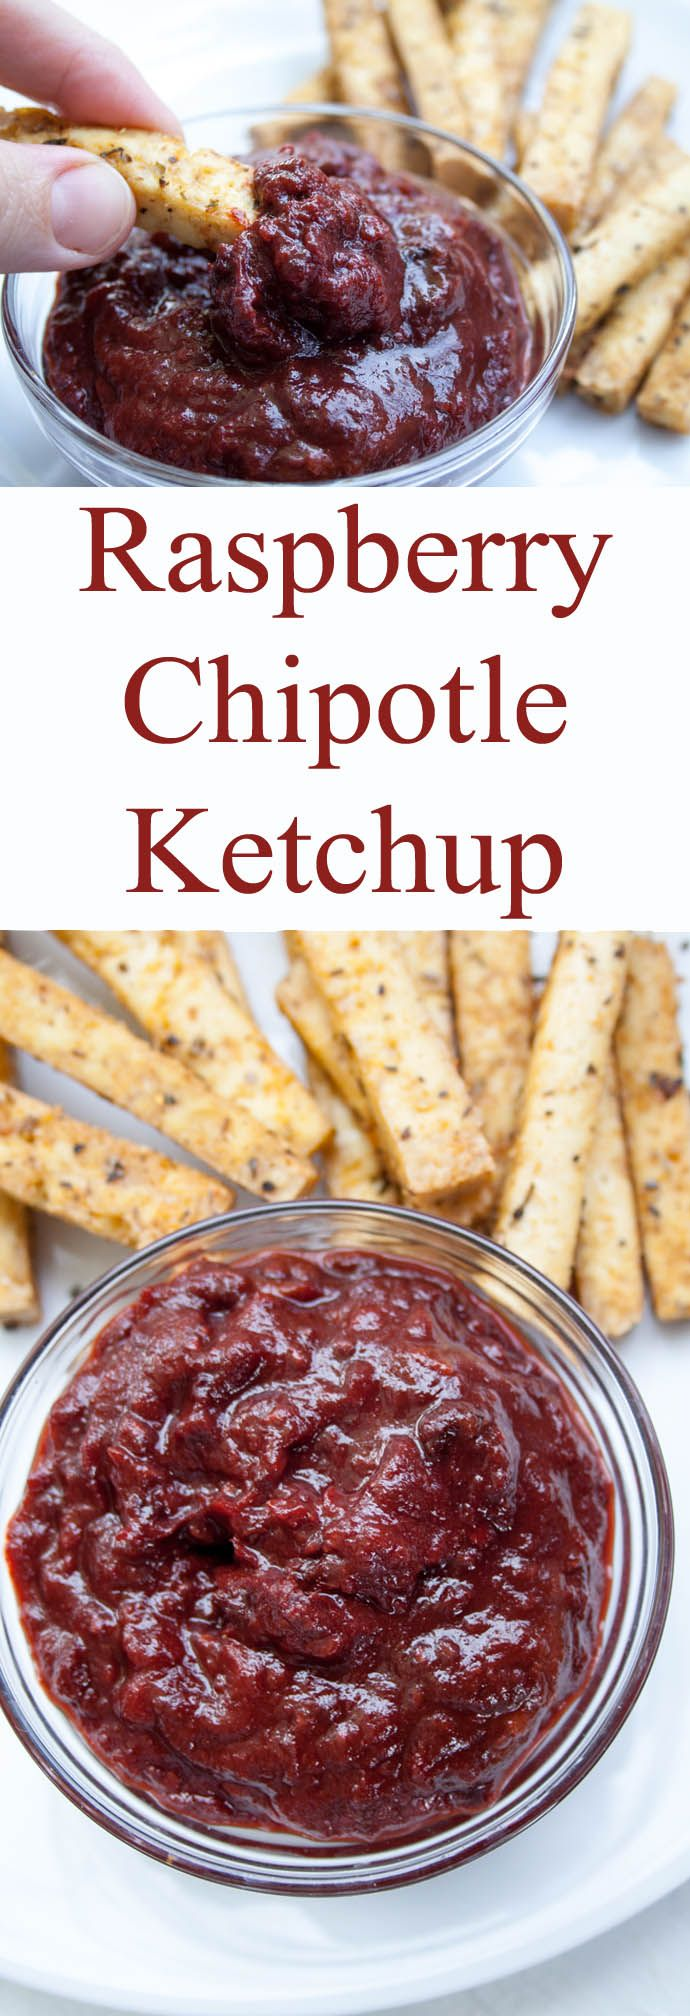 Raspberry Chipotle Ketchup (vegan, gluten free) - Thisketchup is smoky, spicy, and a little tart. It is thick and chunky - perfect for a veggie burger or fries.